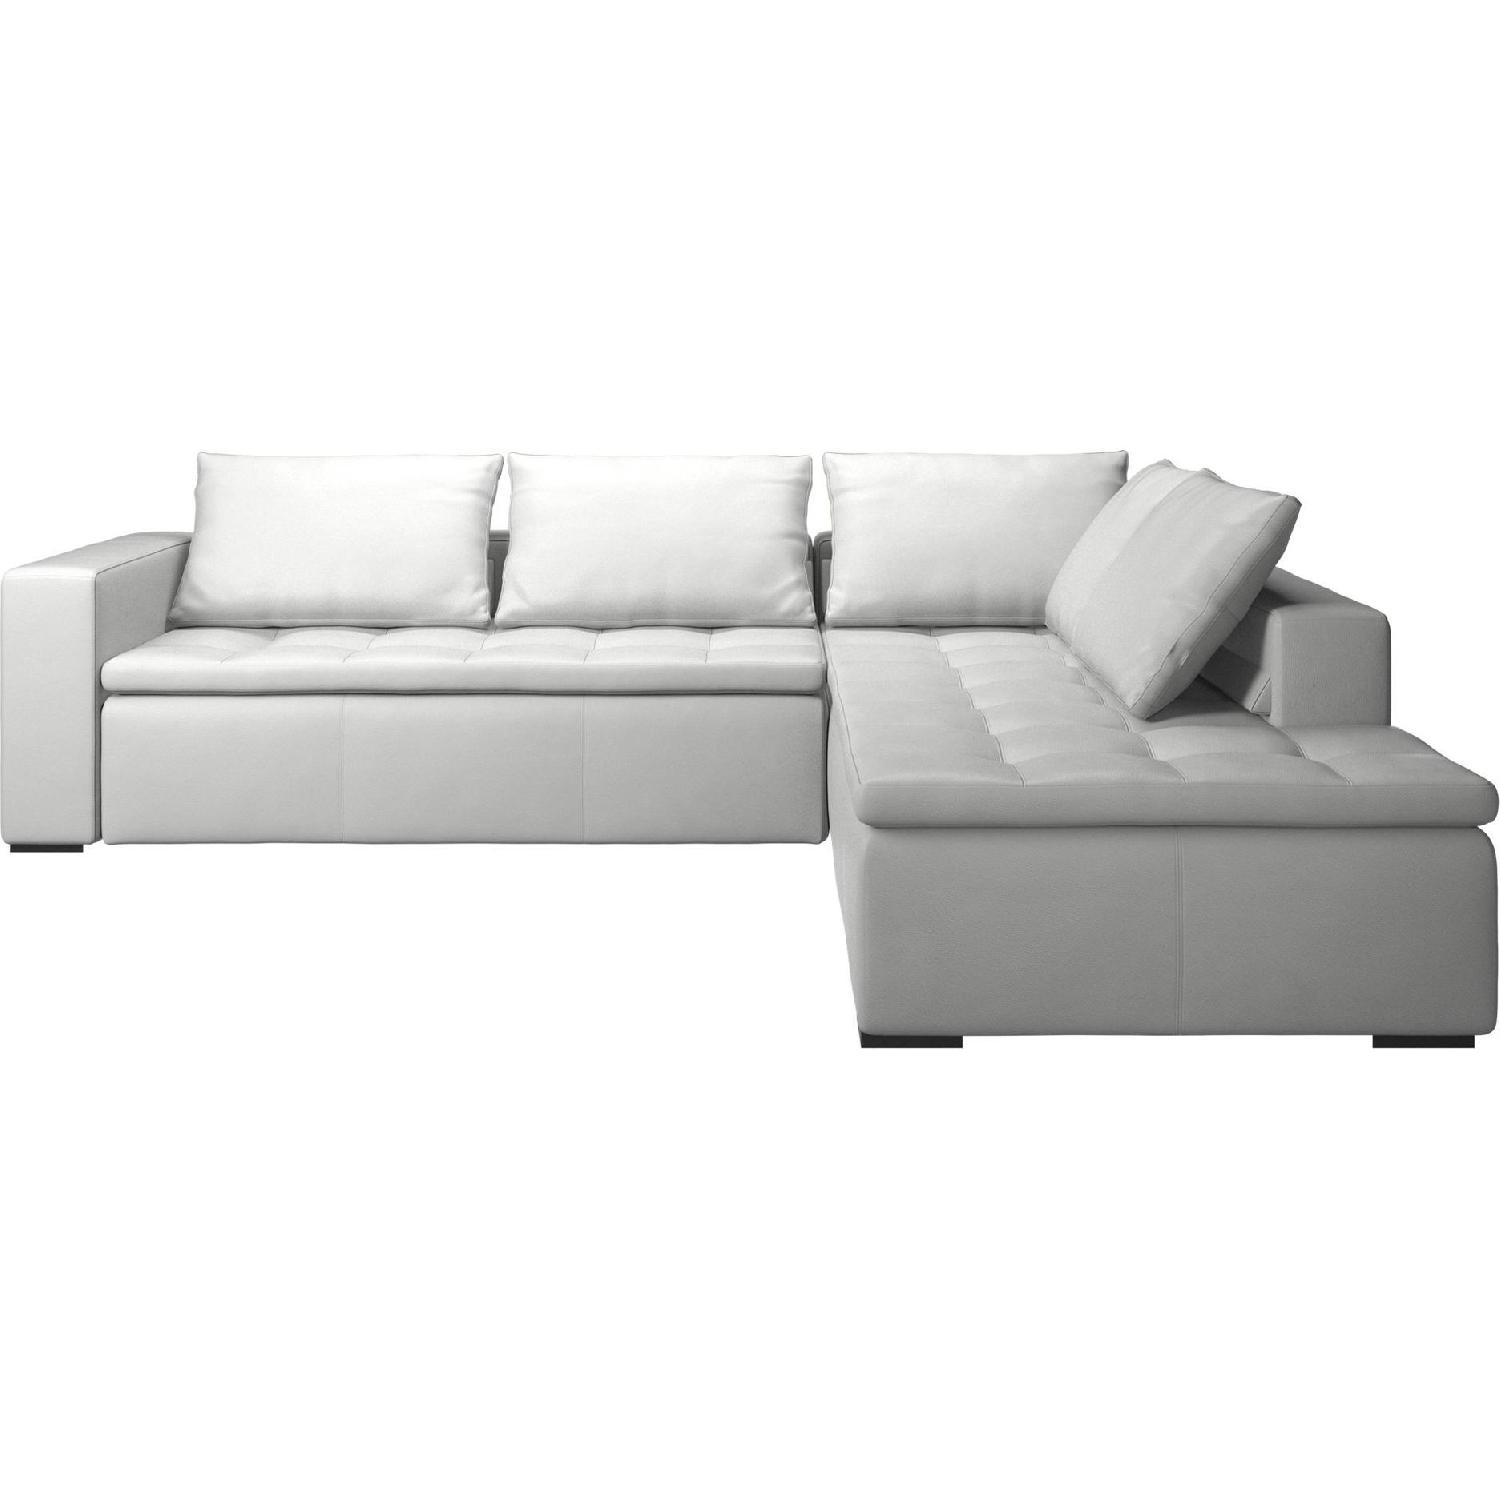 BoConcept Leather Mezzo L Shape Sectional Sofa AptDeco